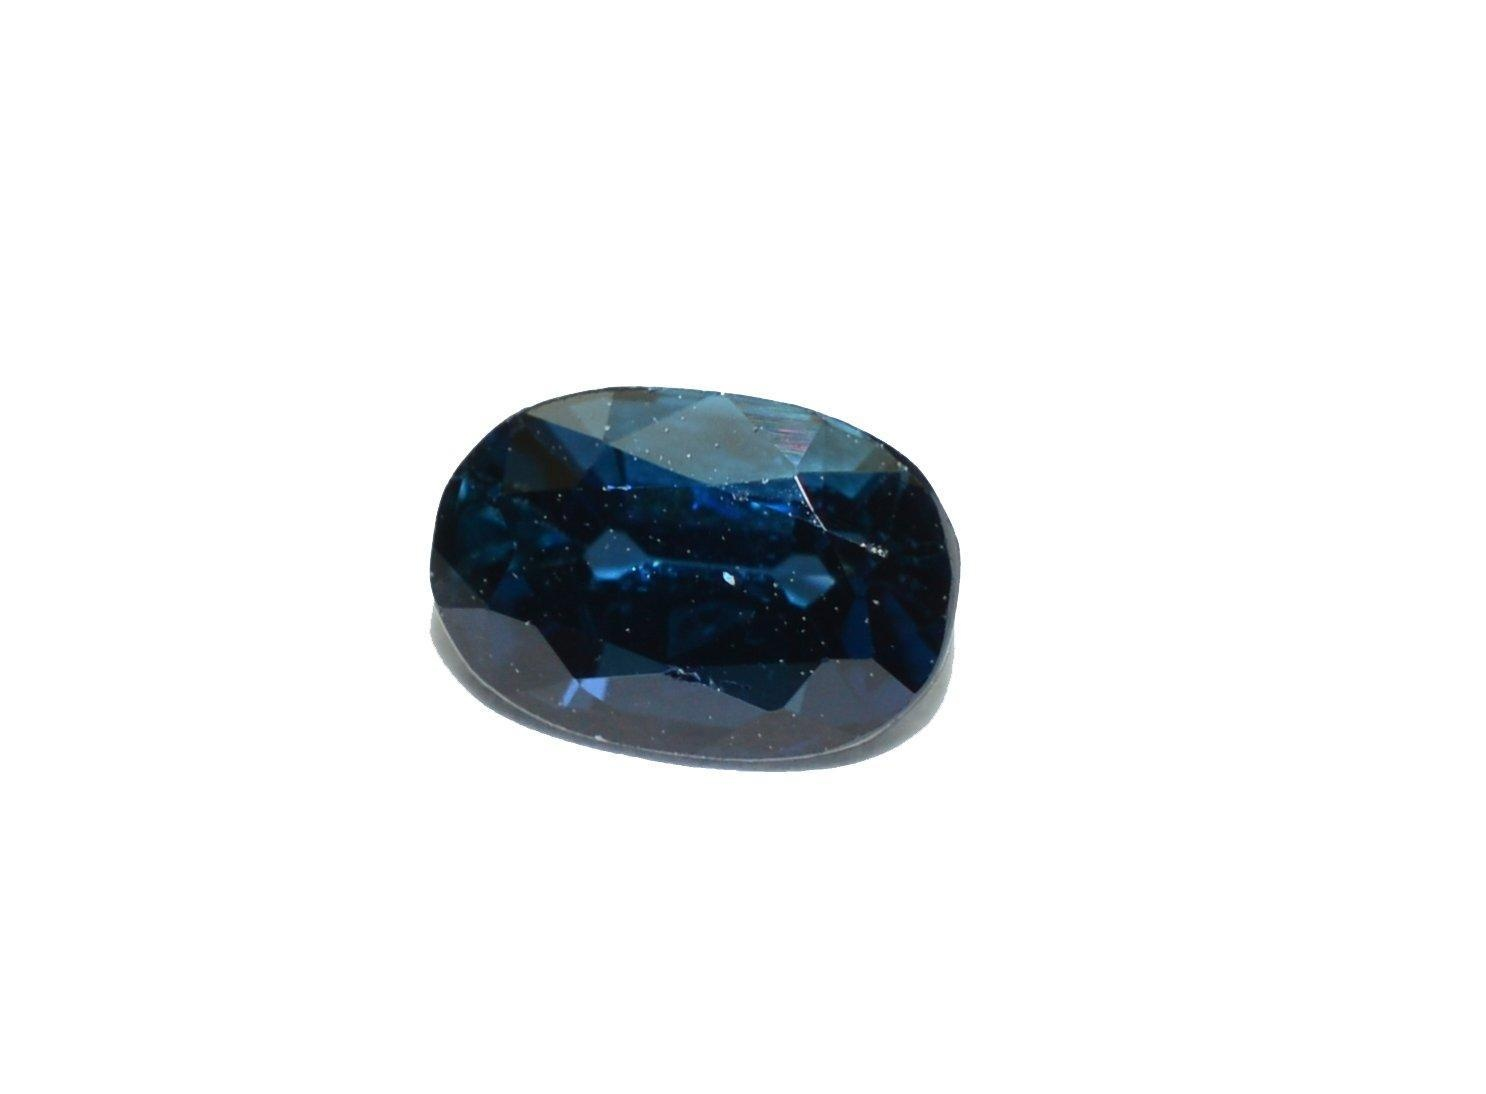 Blue Sapphire natural & facet cut gemstone 0.59 carat